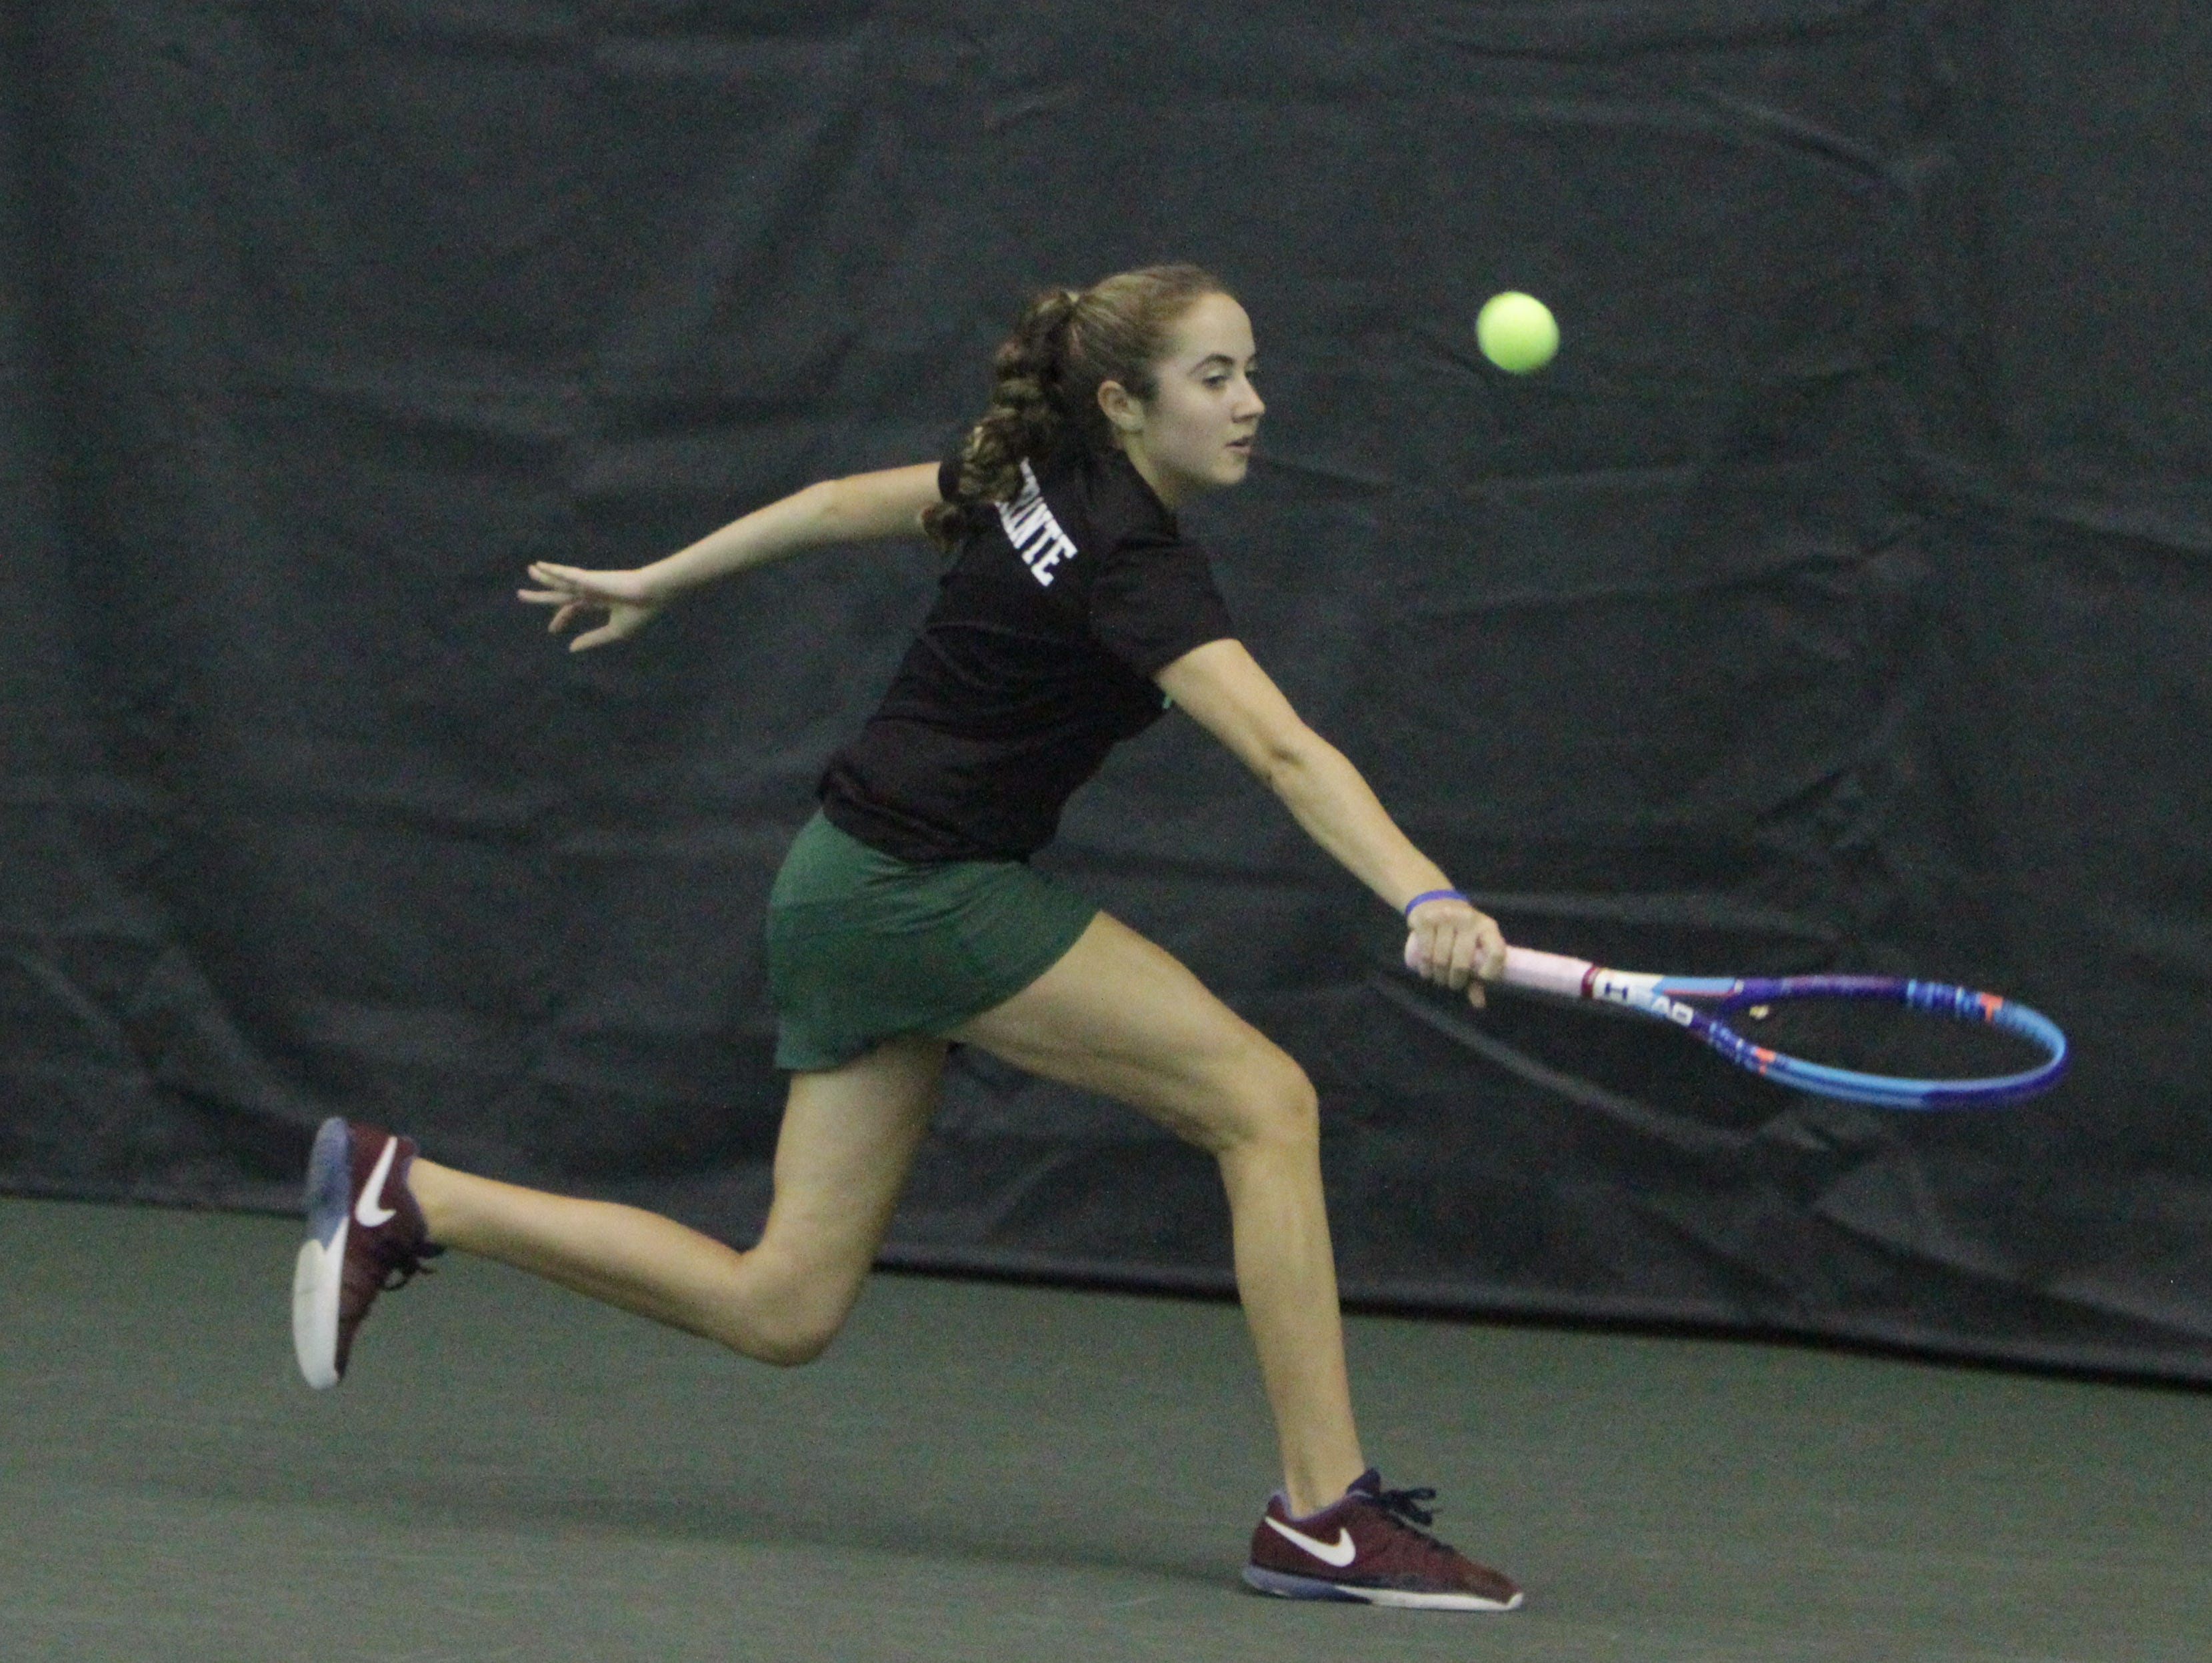 Yorktown's Caitlin Ferante returns the ball on her backhand during the 2016 Section 1 Tennis Tournament finals at Sound Shore Indoor Tennis in Port Chester on Sunday, Oct. 23rd, 2016.